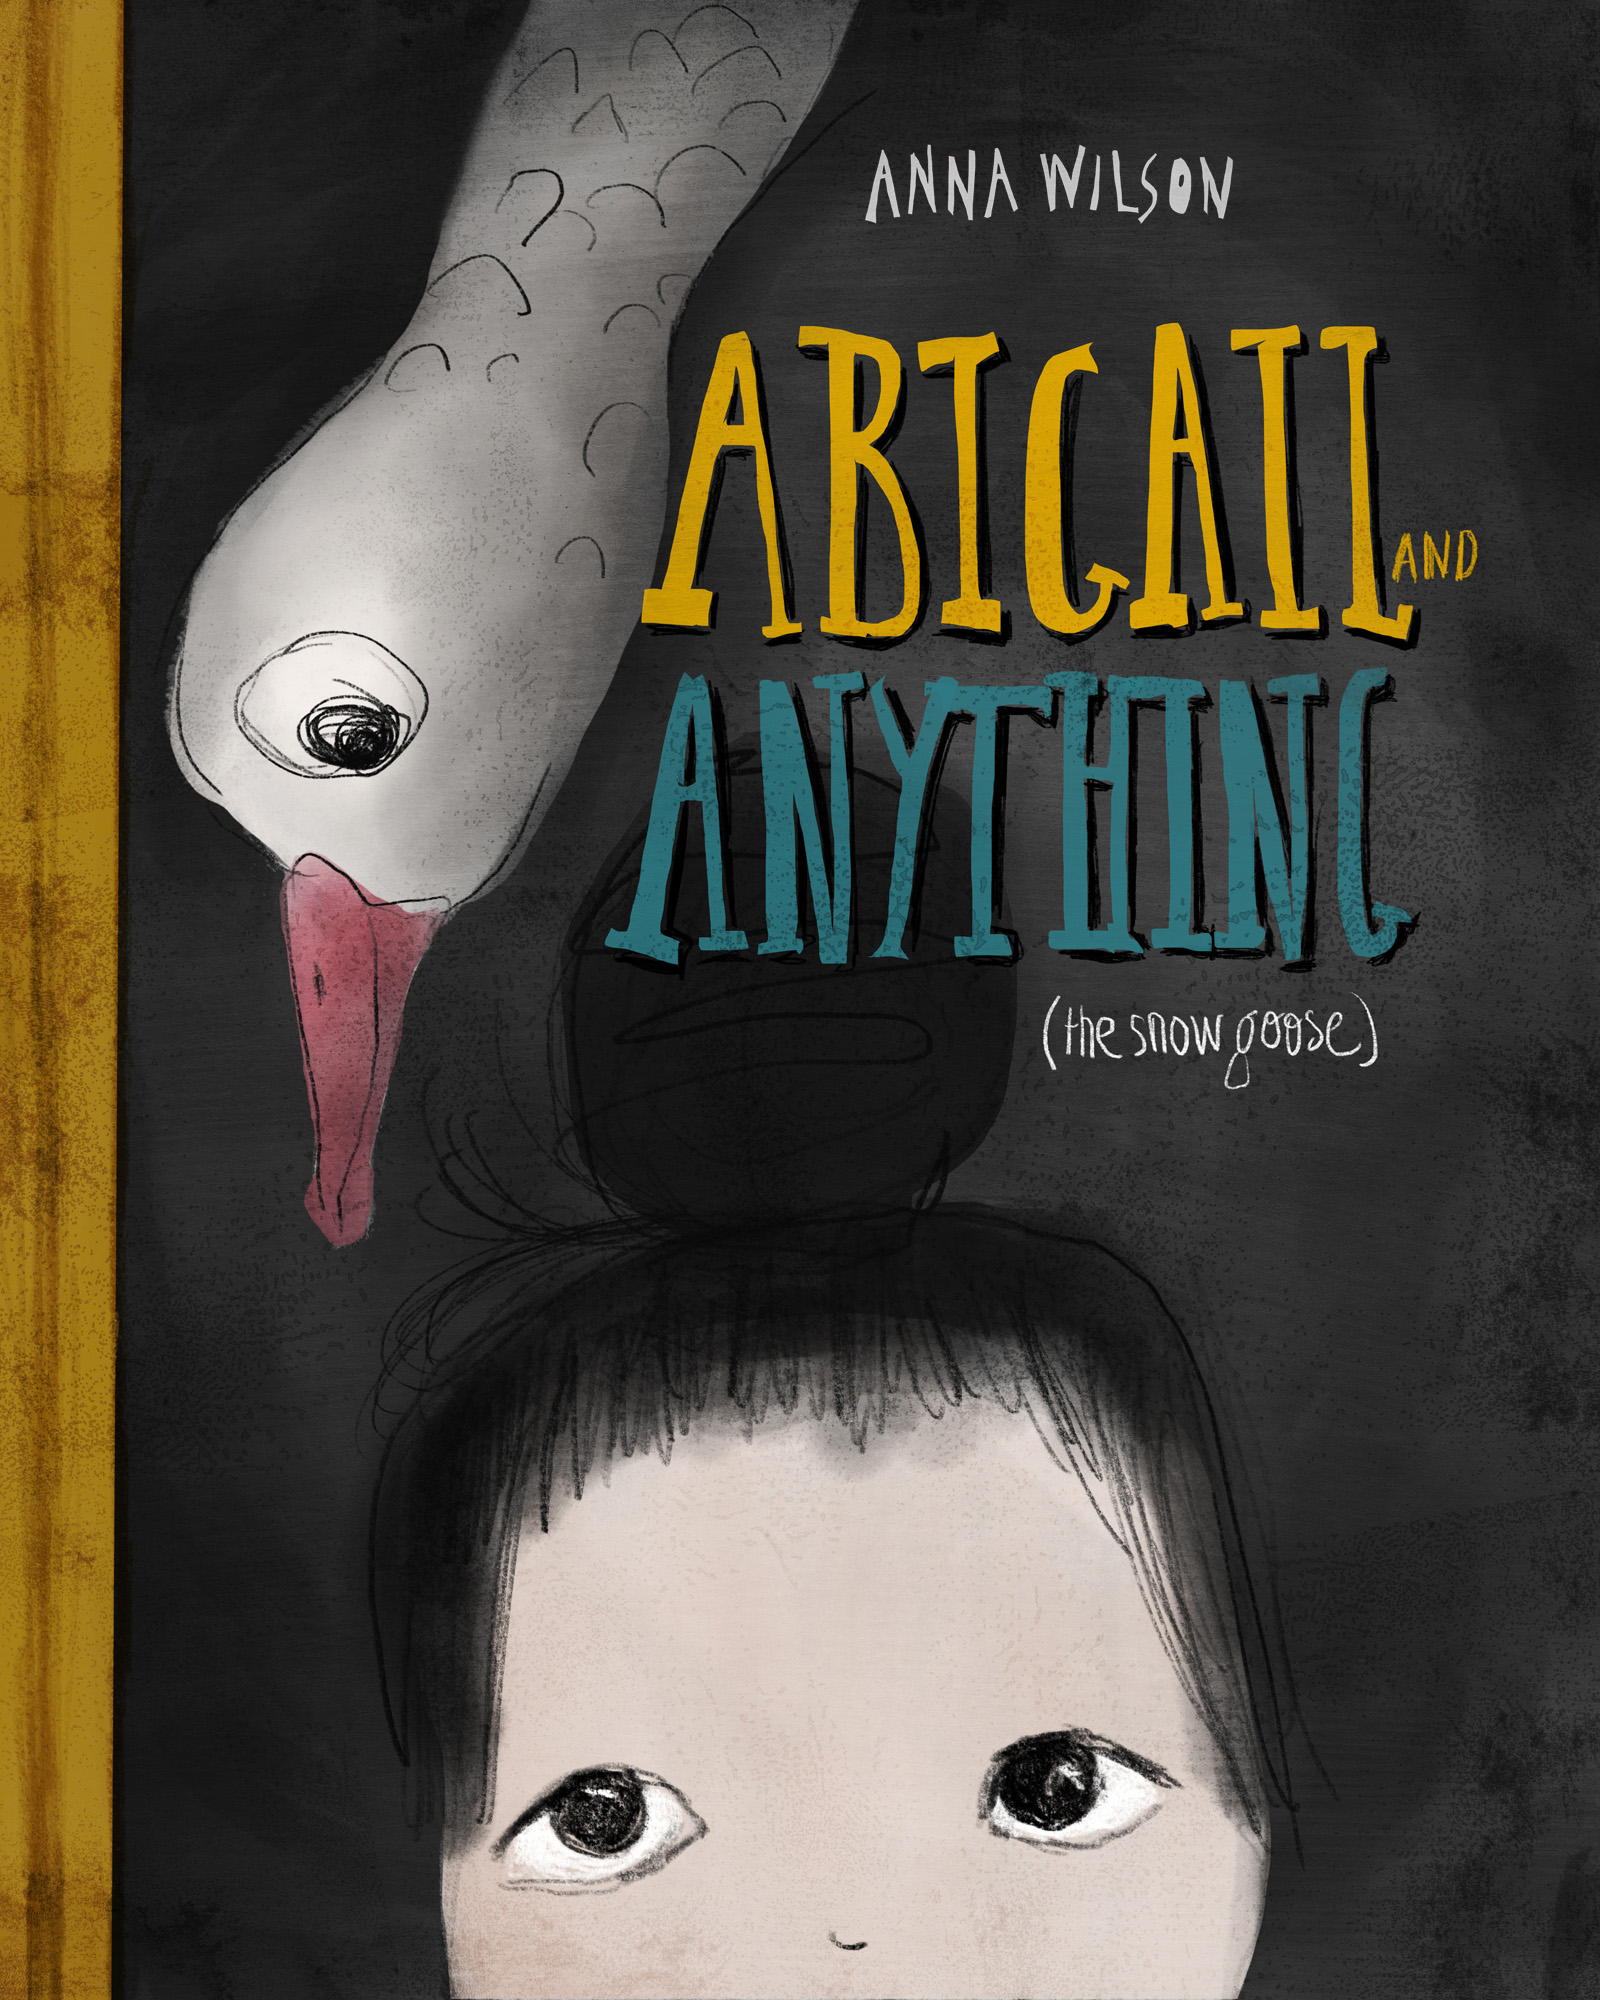 abigail and anything cover copy.jpg